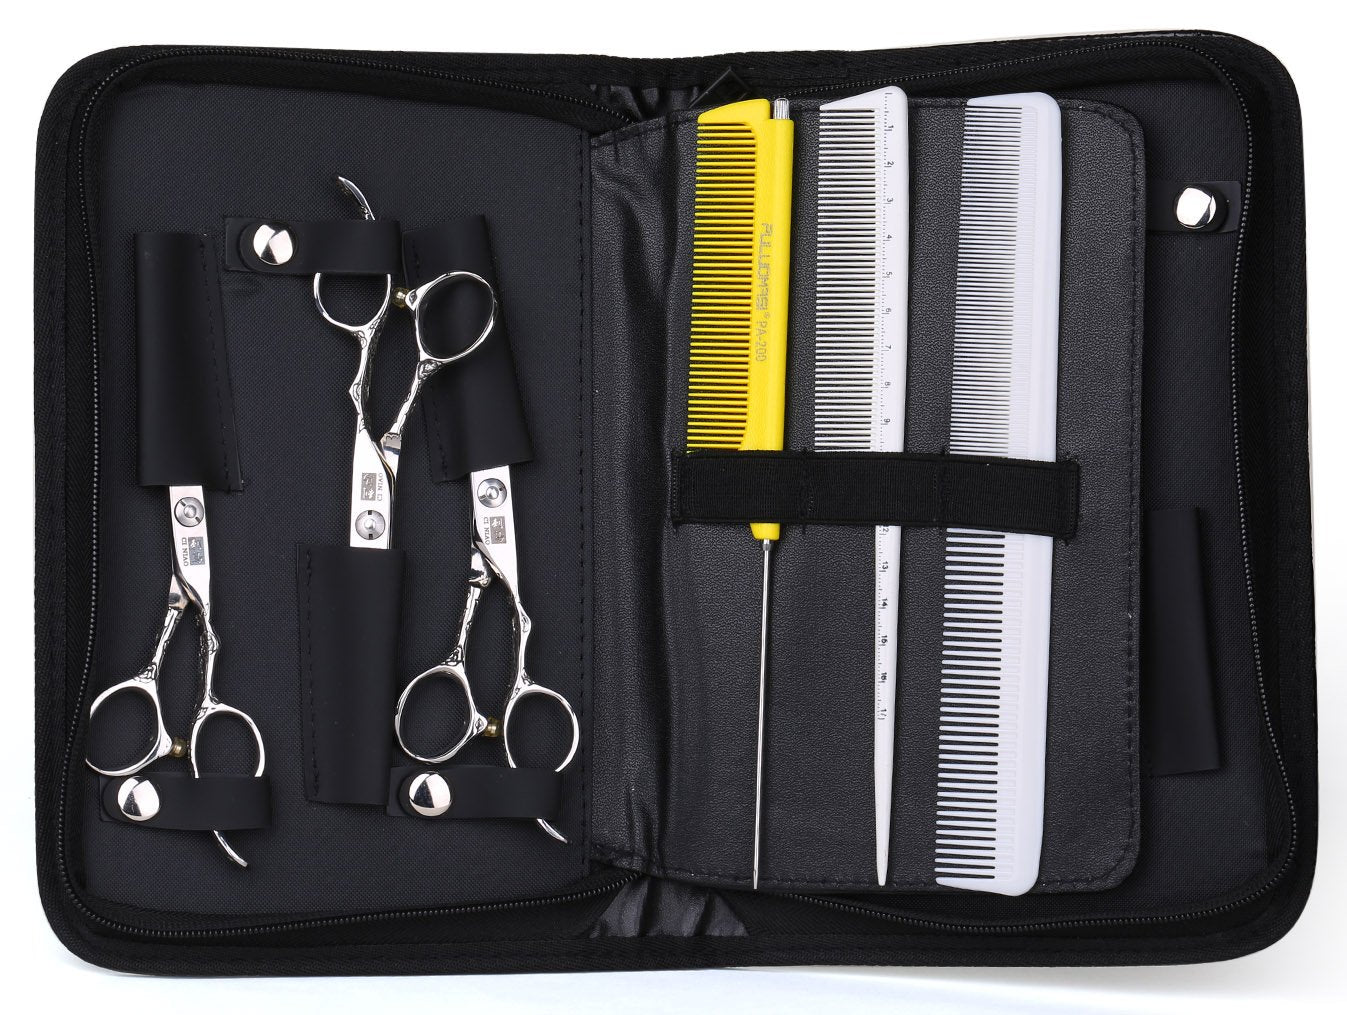 Hair Stylist Shears Holder Pouch Cases for Hairdressers